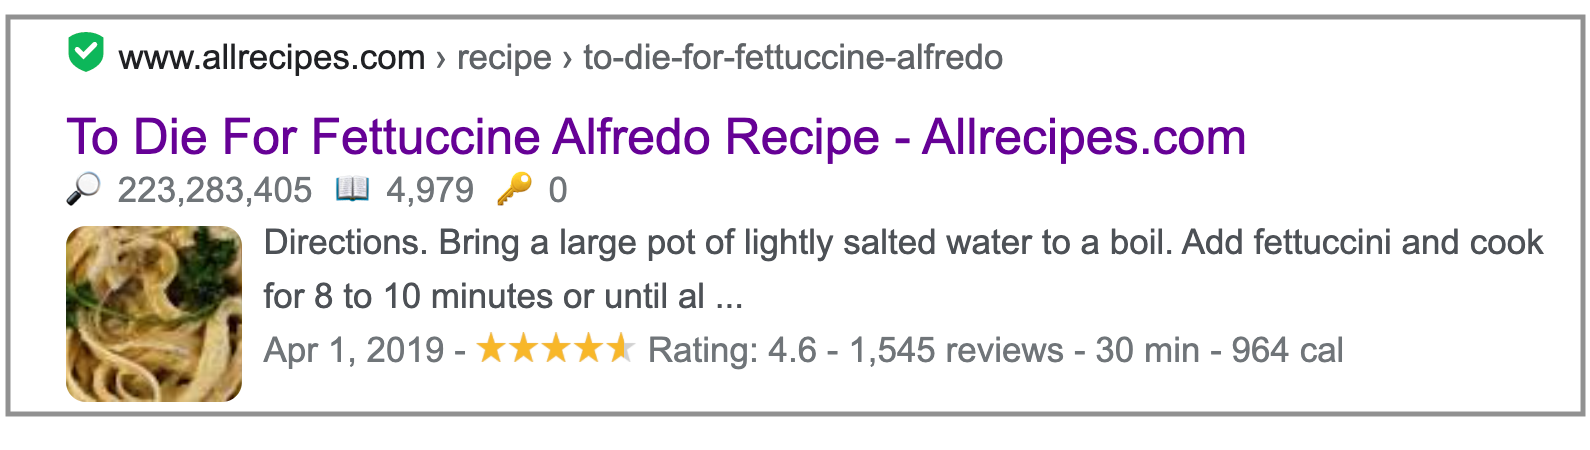 rich snippet in SERP